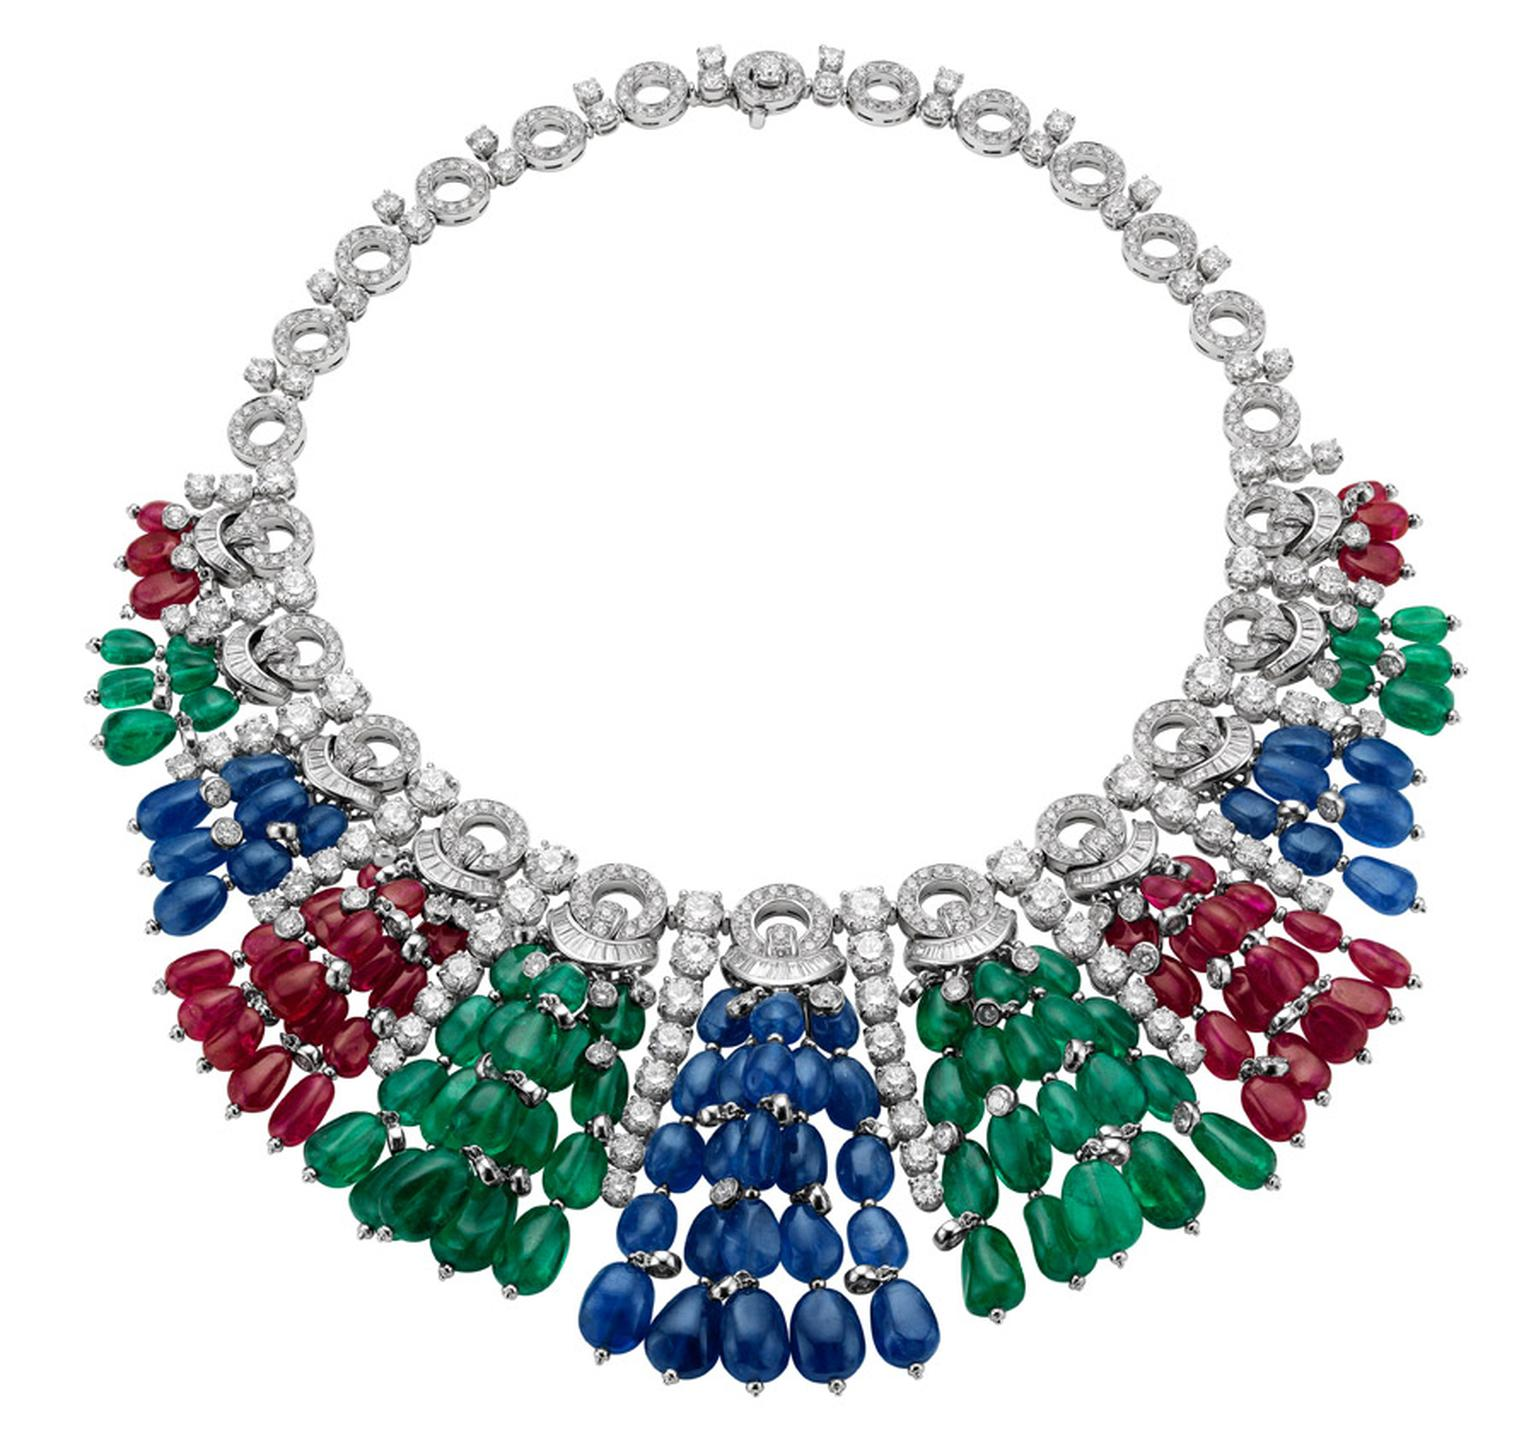 Biennale-Bulgari-Necklace